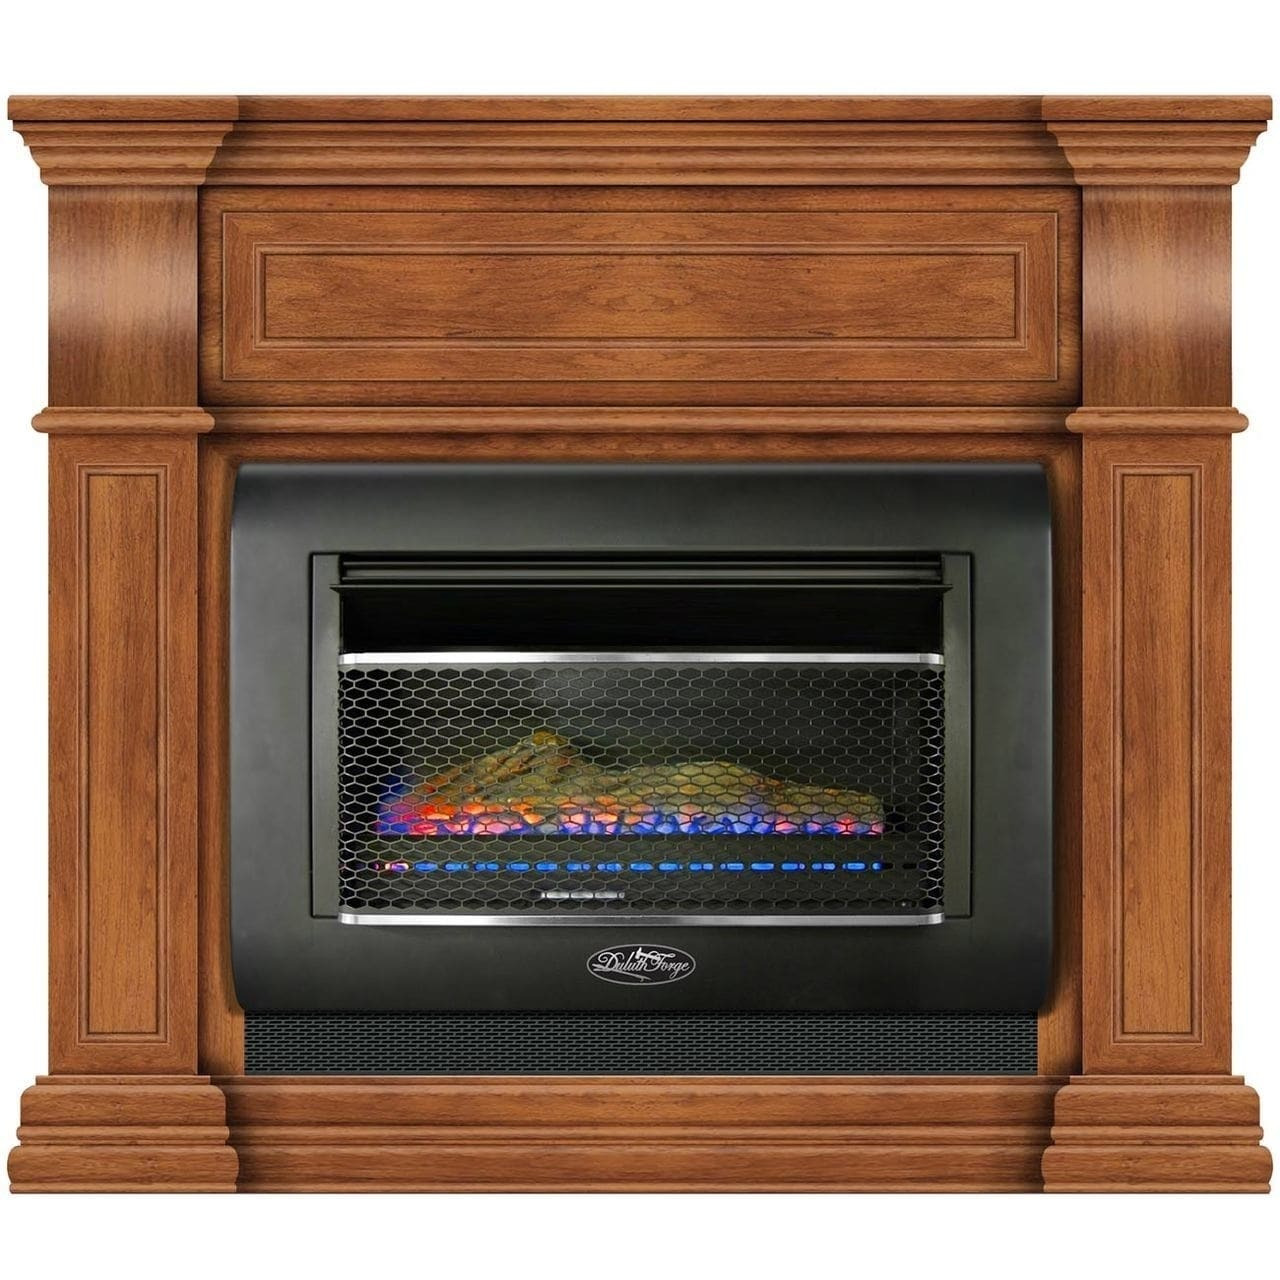 Shop duluth forge mini hearth ventless gas wall fireplace 26000 btu t stat control toasted almond finish model df300l m ta free shipping today